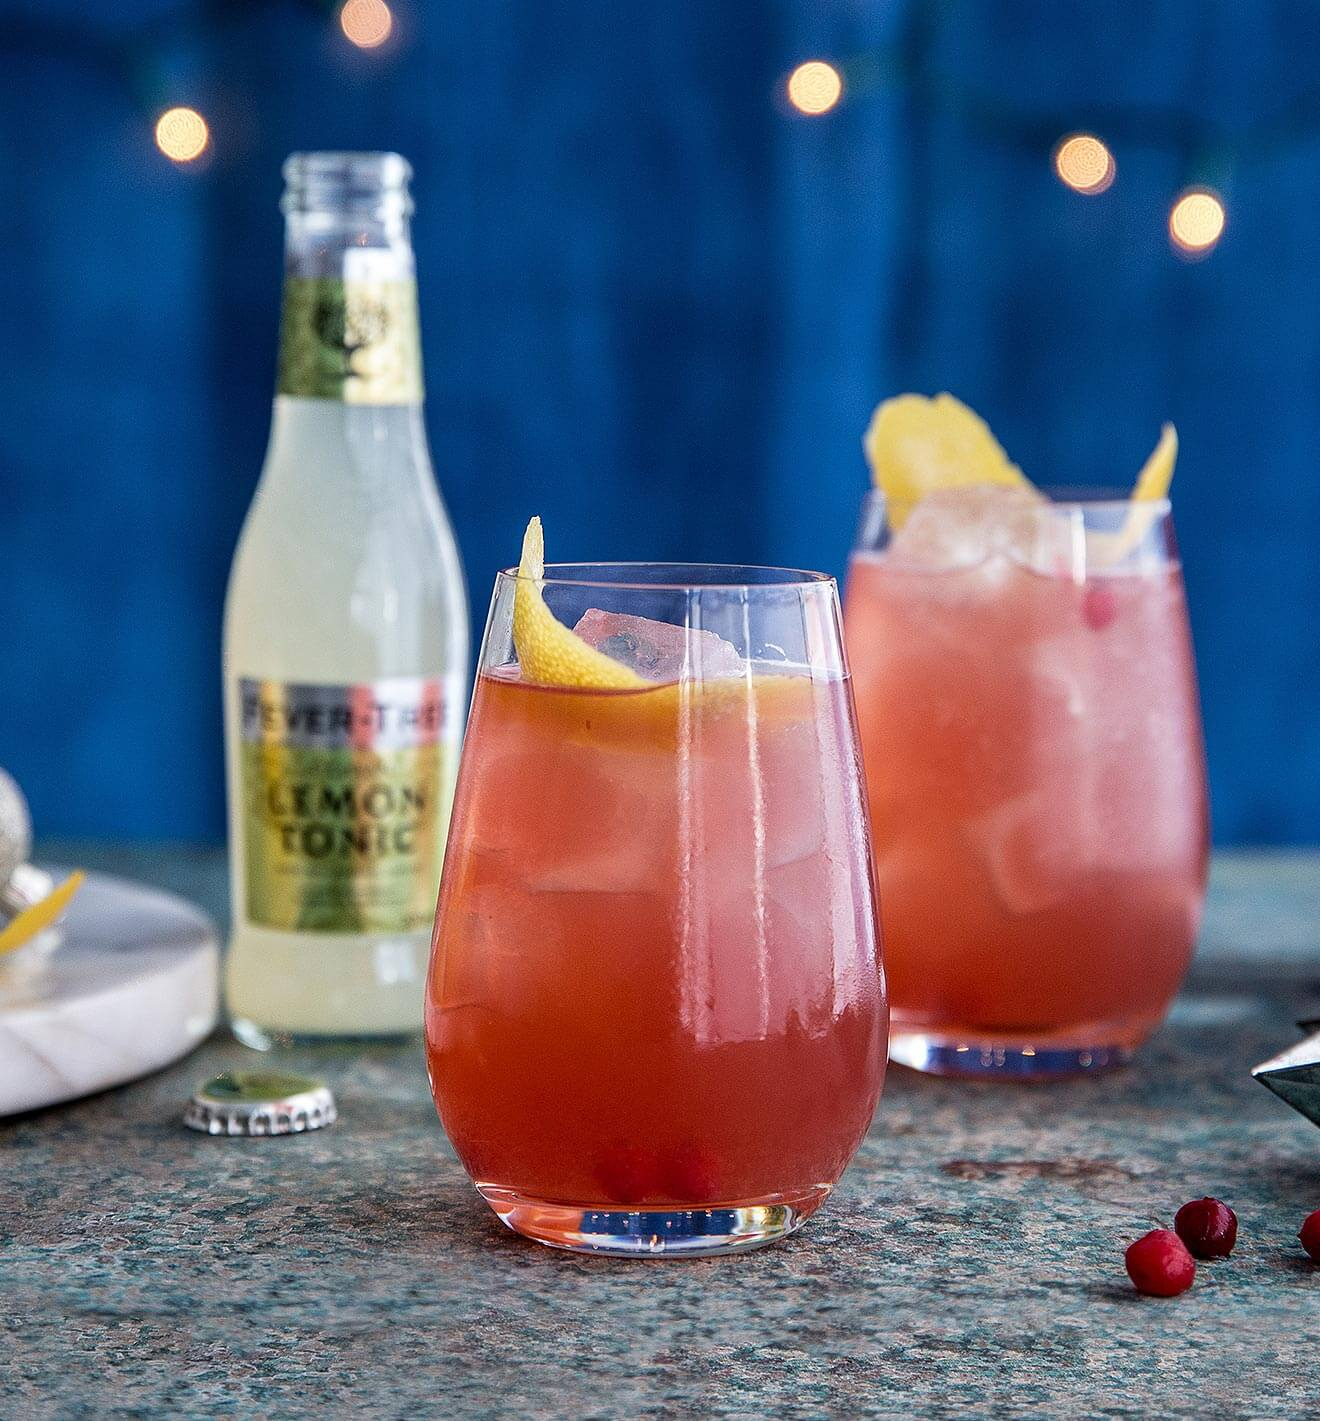 Sloe Gin & Fever-Tree Lemon Tonic, cocktails and bottle, blue starry backdrop